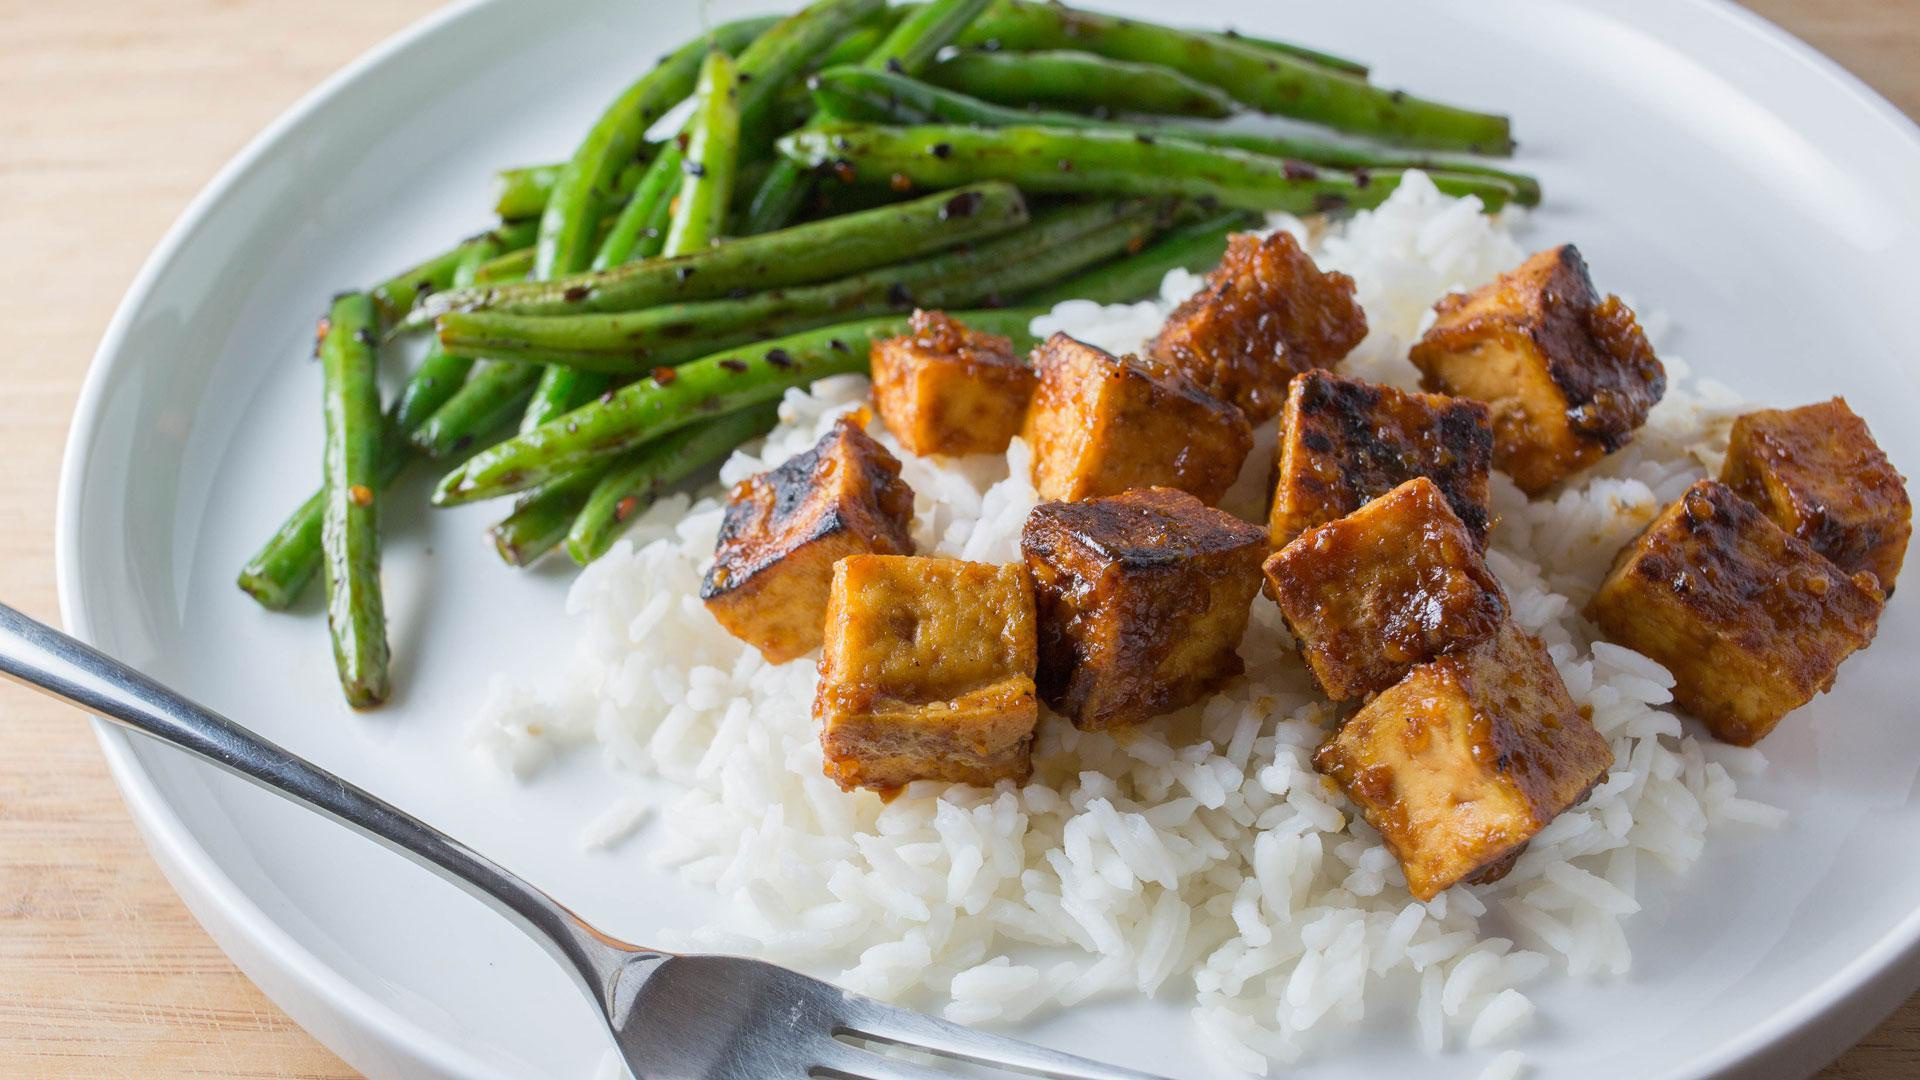 Miso-glazed tofu with spicy string beans